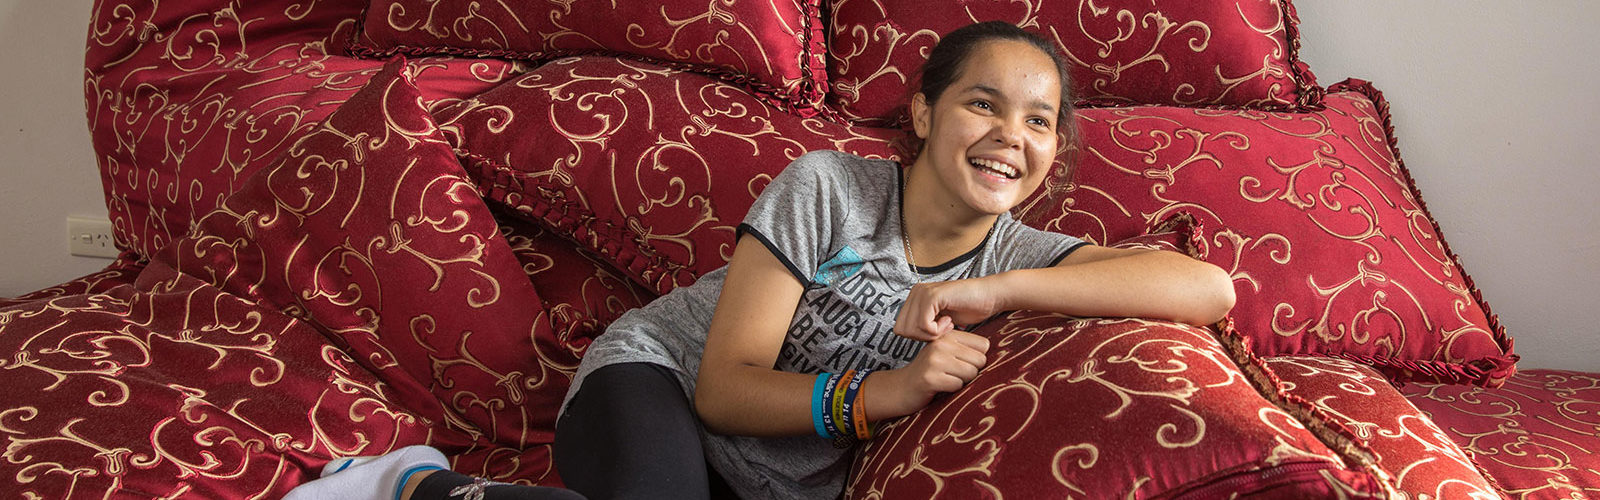 Roxana, 13, a refugee from Afganistan, at her home in Canberra. Photo: Andrew Taylor